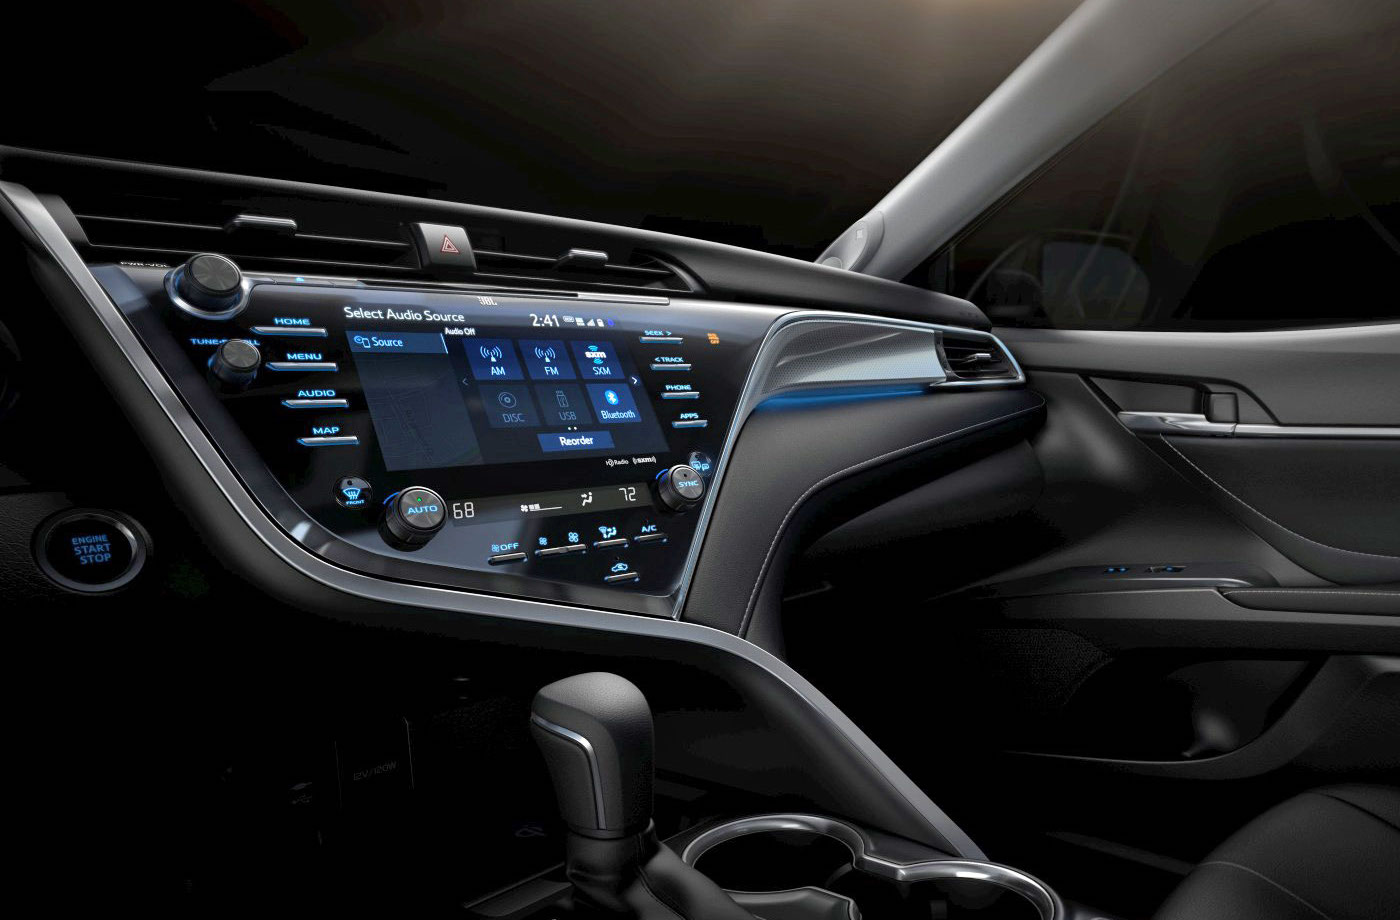 2018 Toyota Camry to feature Linux-based infotainment system